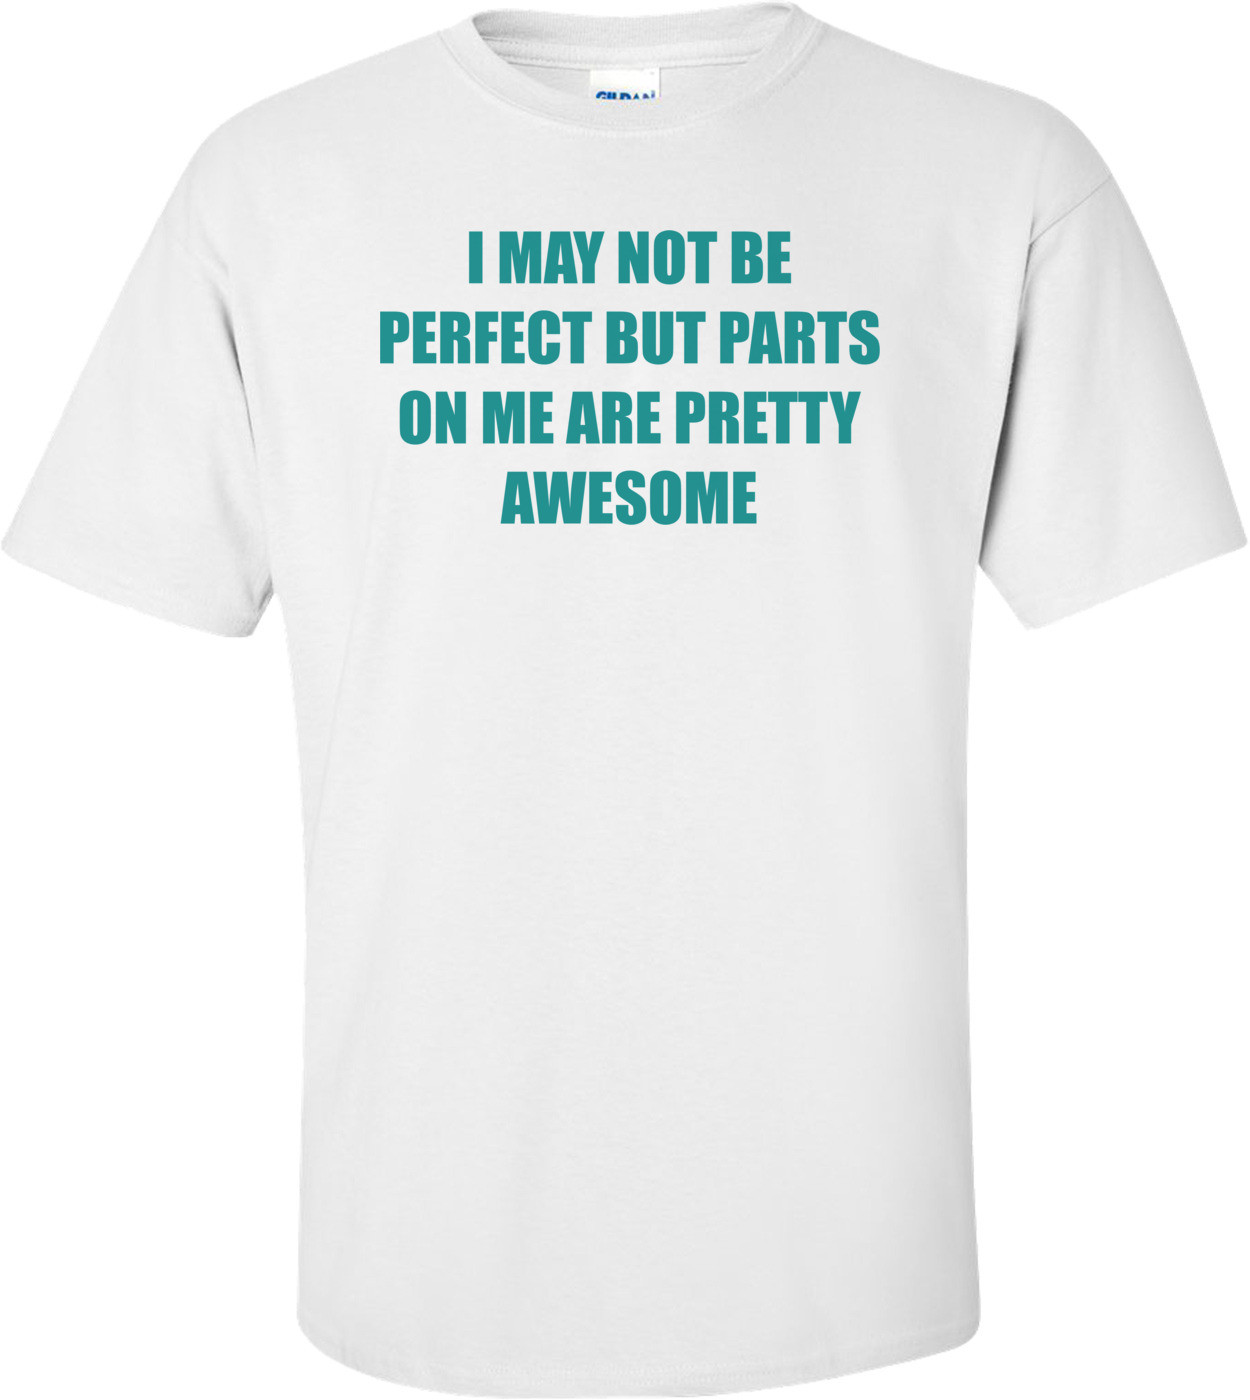 I MAY NOT BE PERFECT BUT PARTS ON ME ARE PRETTY AWESOME Shirt